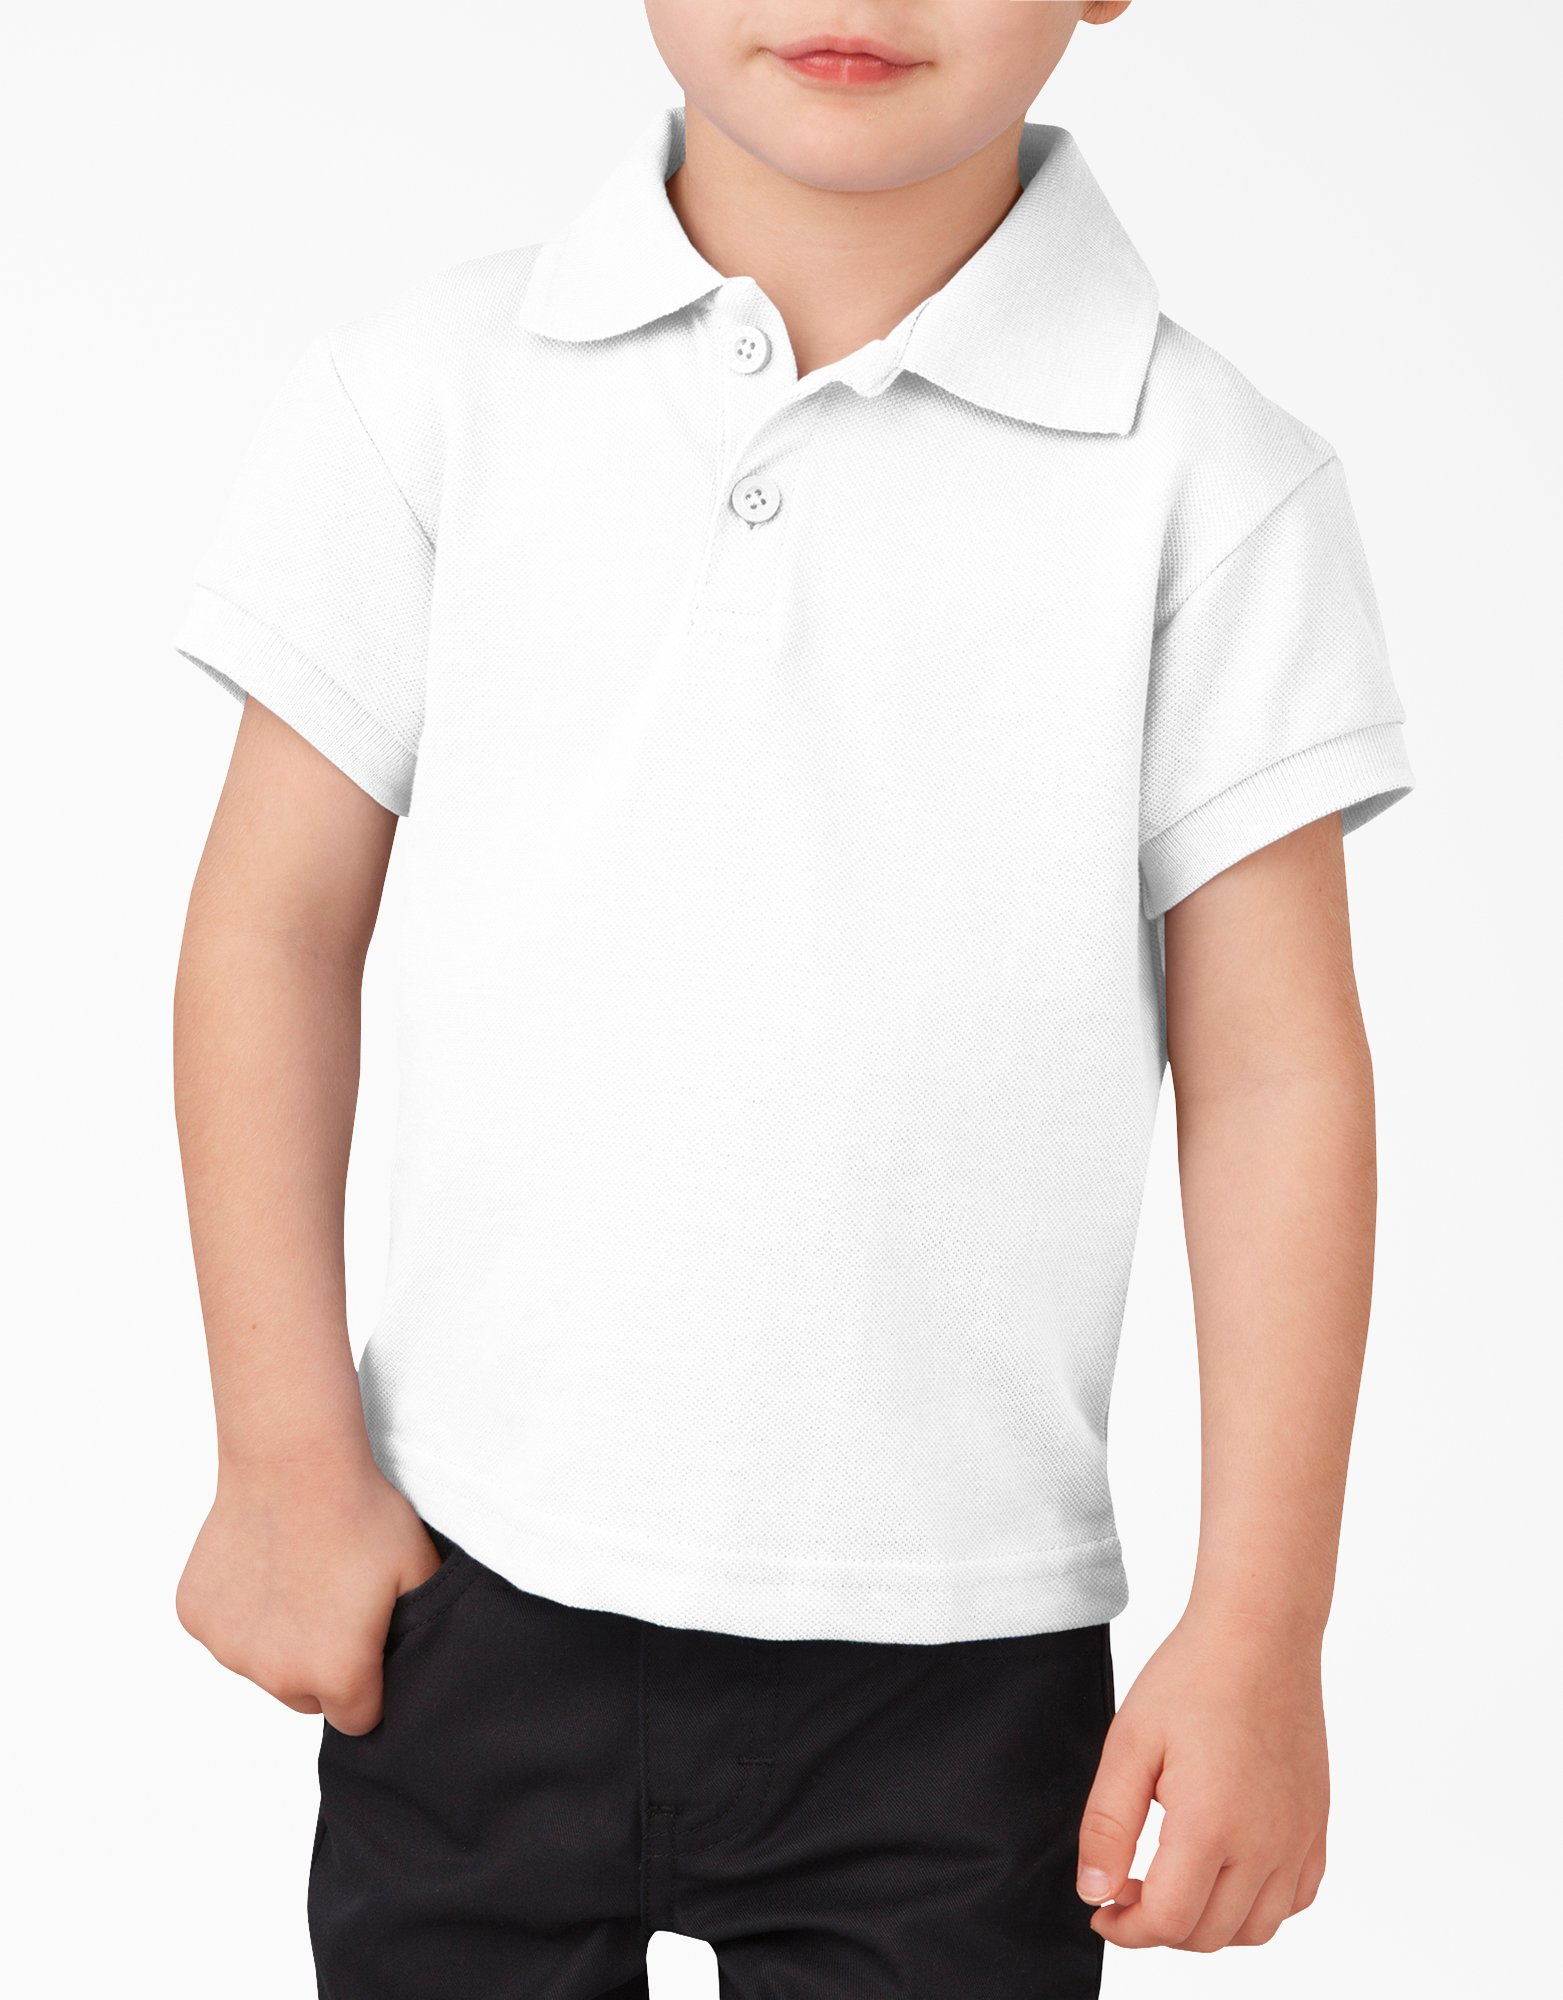 Toddler Short Sleeve Piqué Polo Shirt - White (WH)